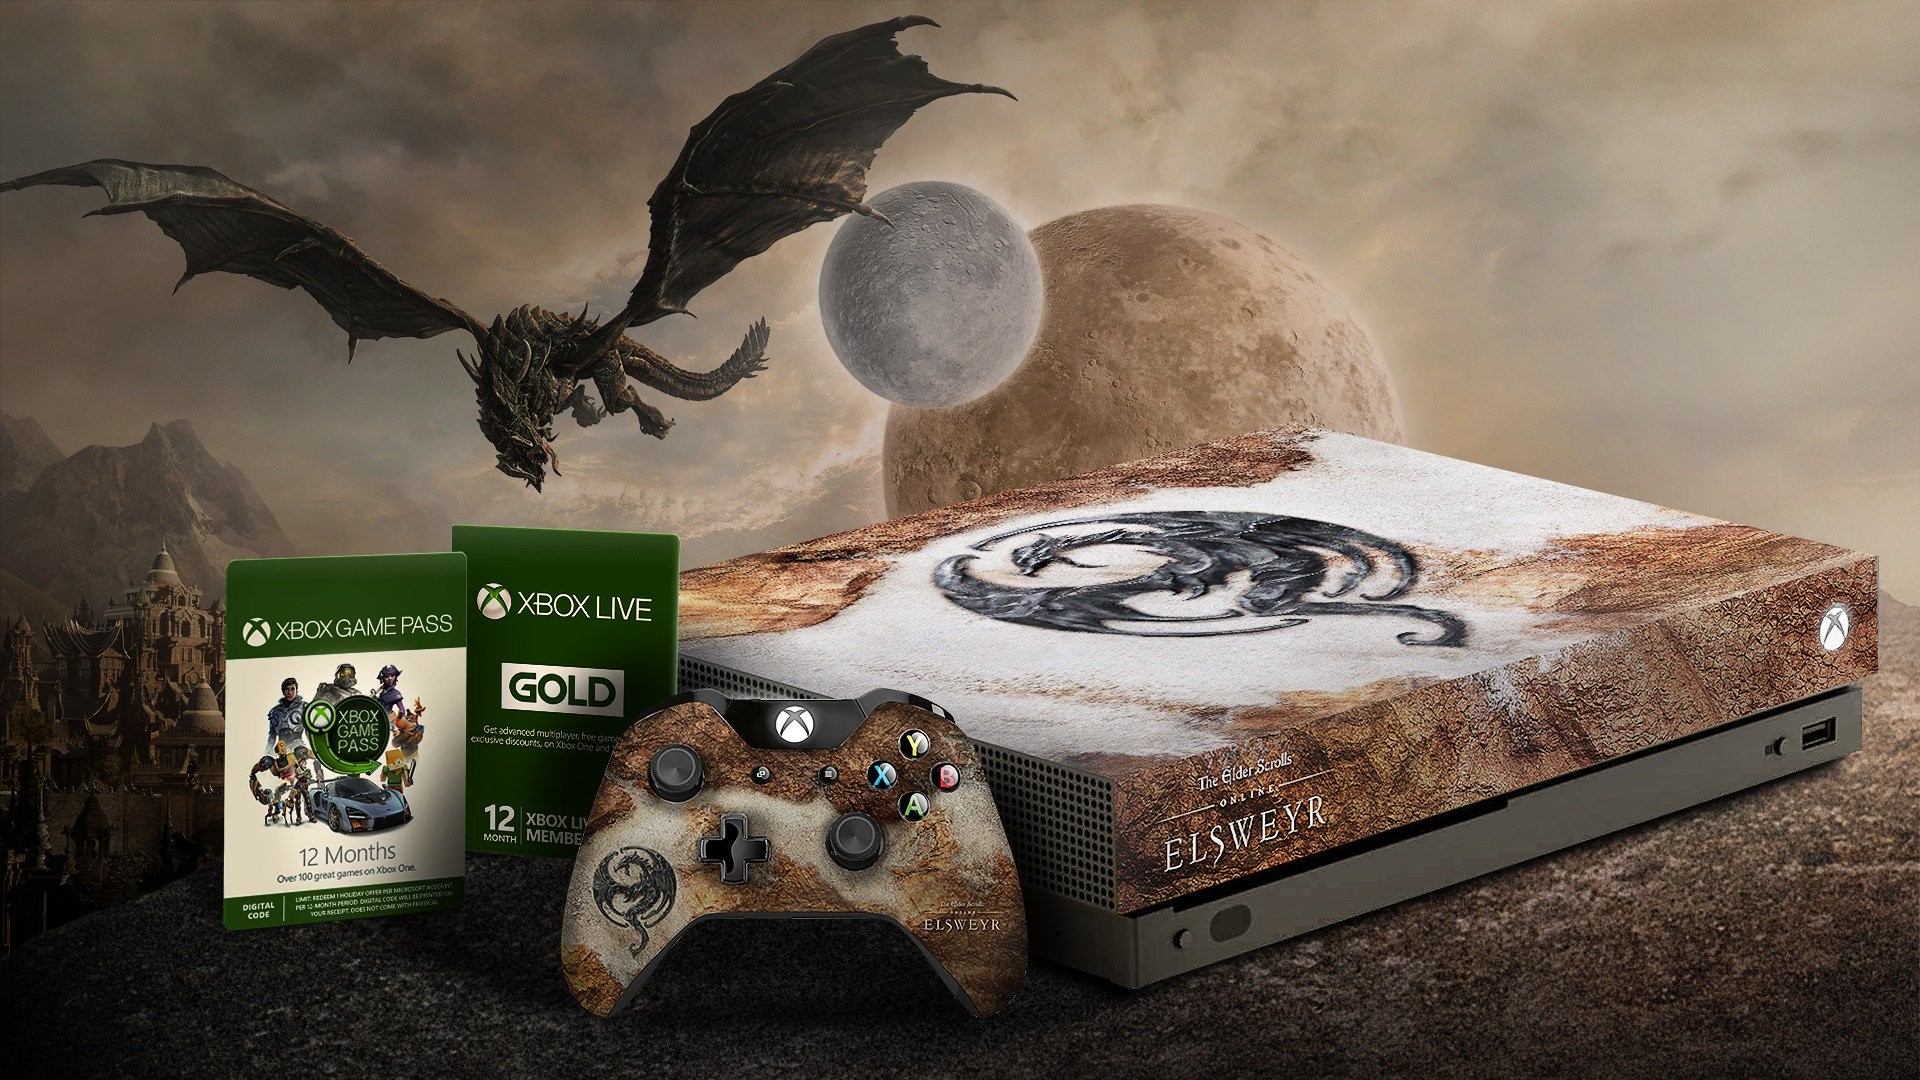 You can win an Elsweyr Xbox One X, a year of Game Pass and Xbox Live